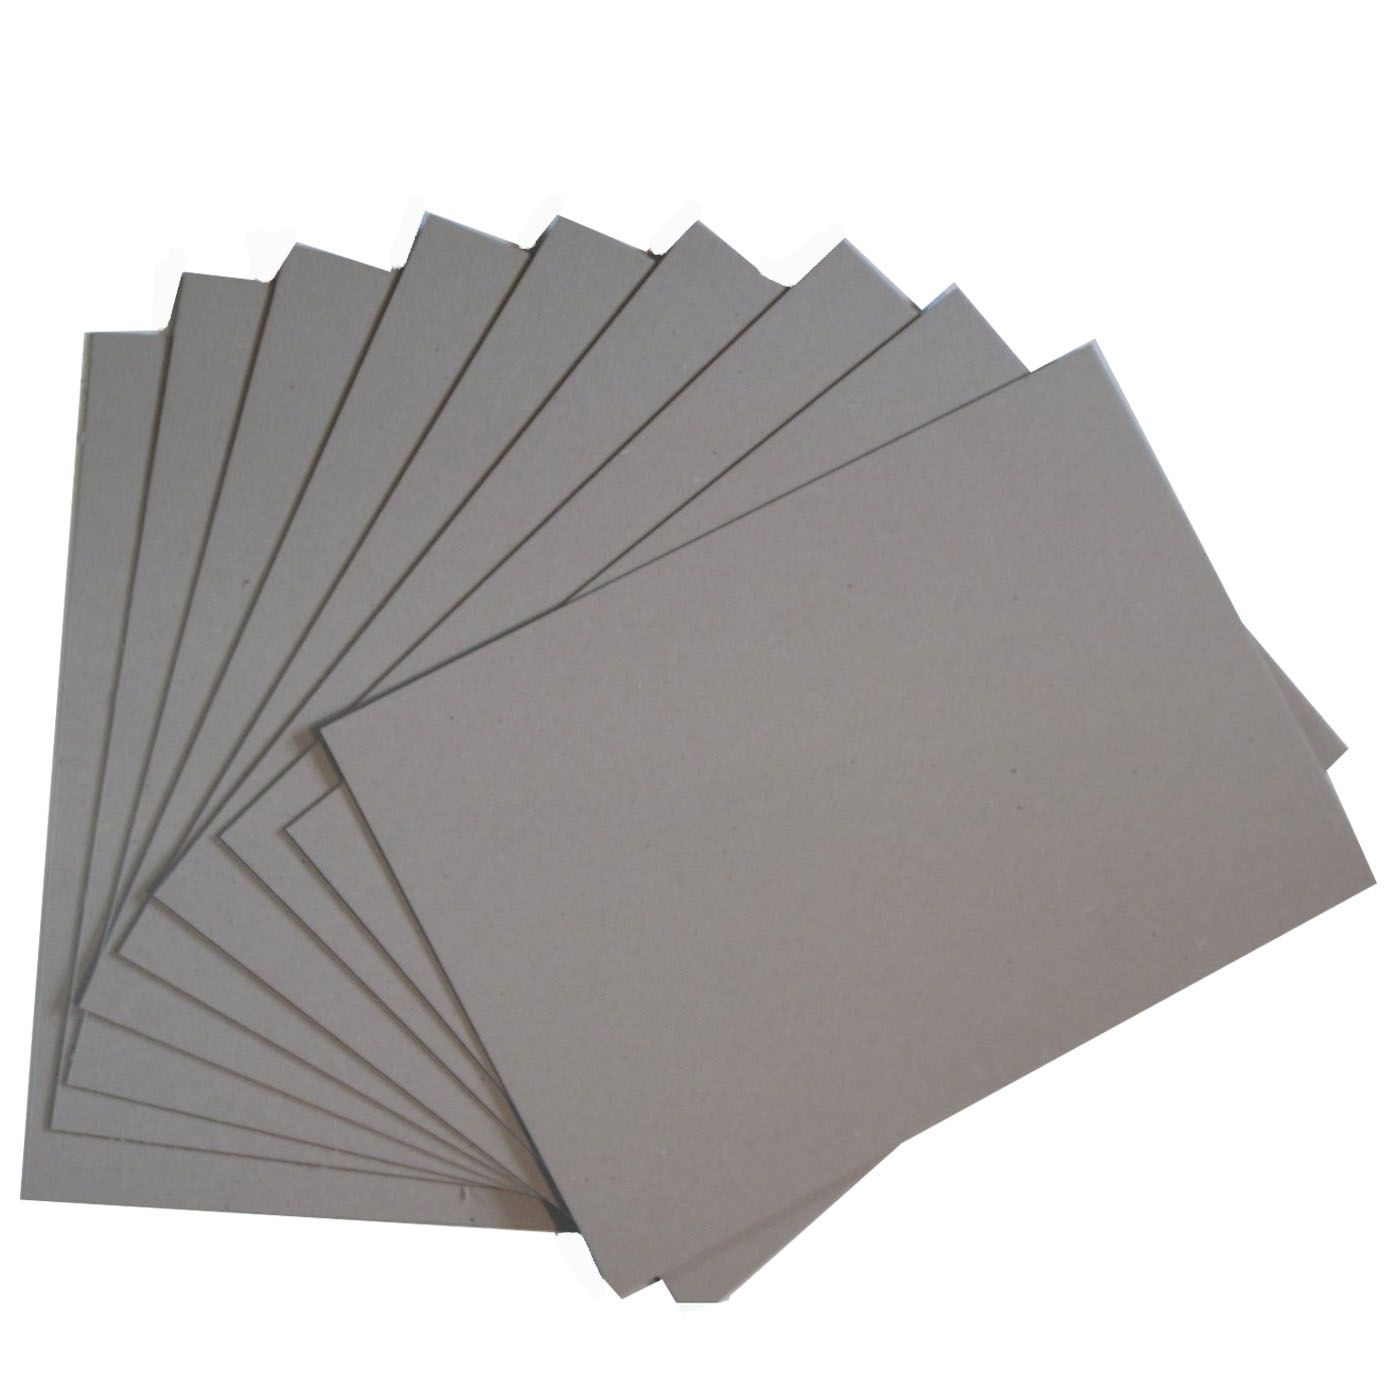 25 sheets A4 mounting model board